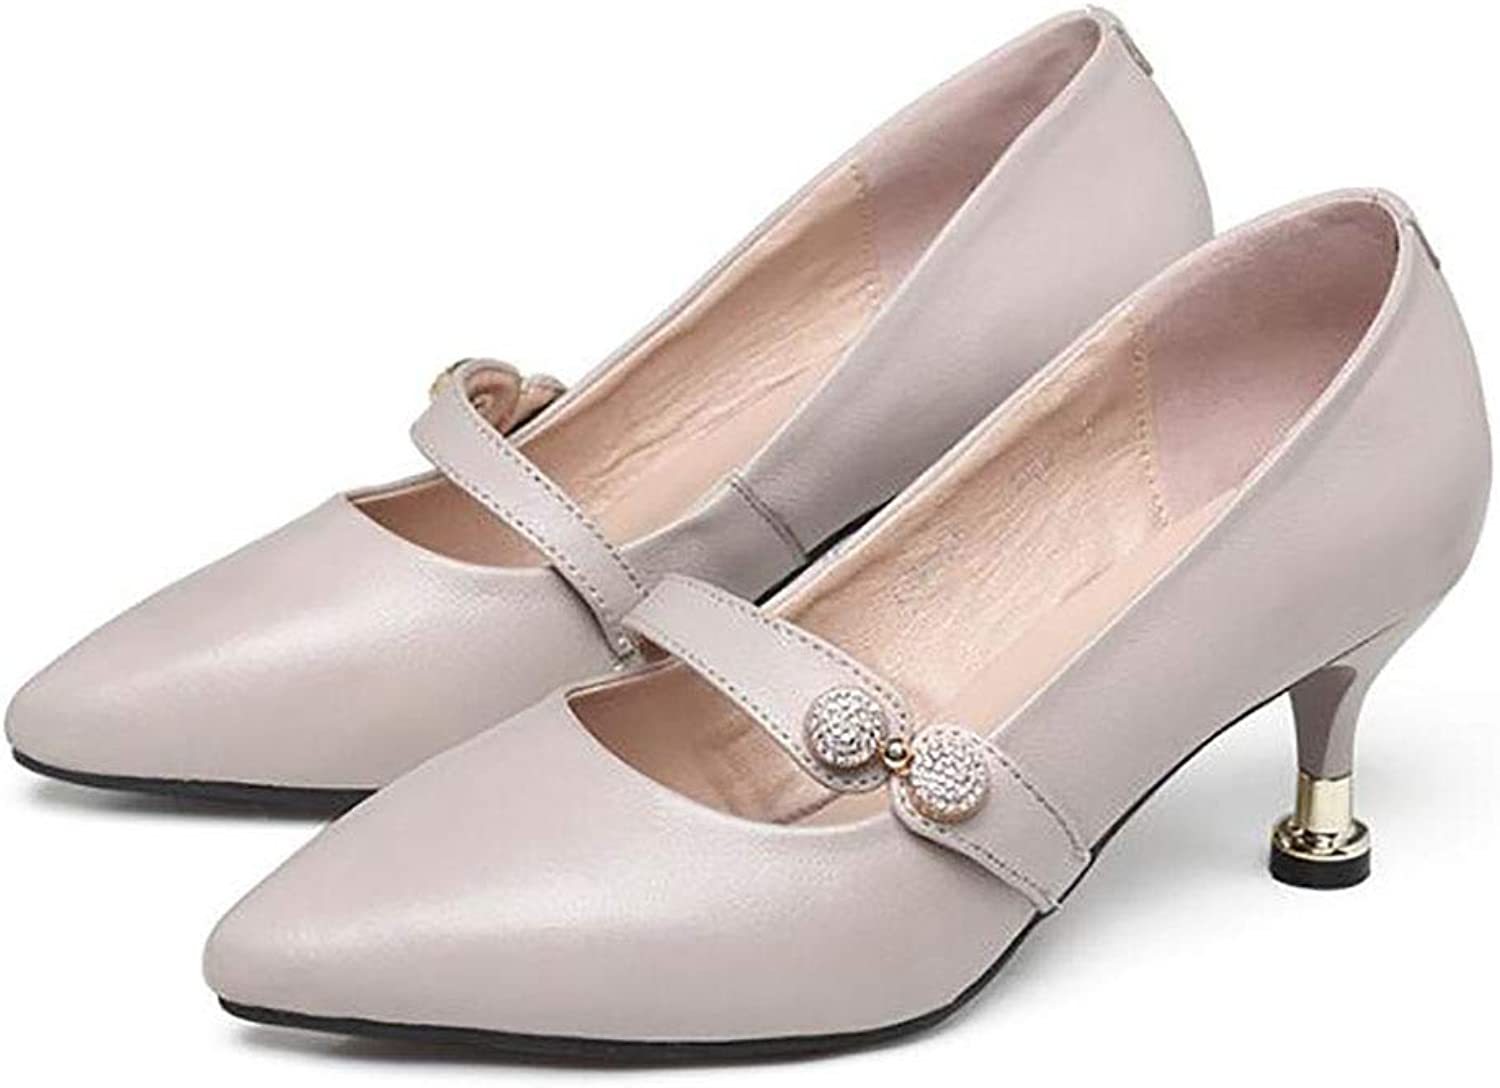 Women's shoes high Heel Thick Heel shoes Comfortable Female shoes Work shoes Women (color   B, Size   34)